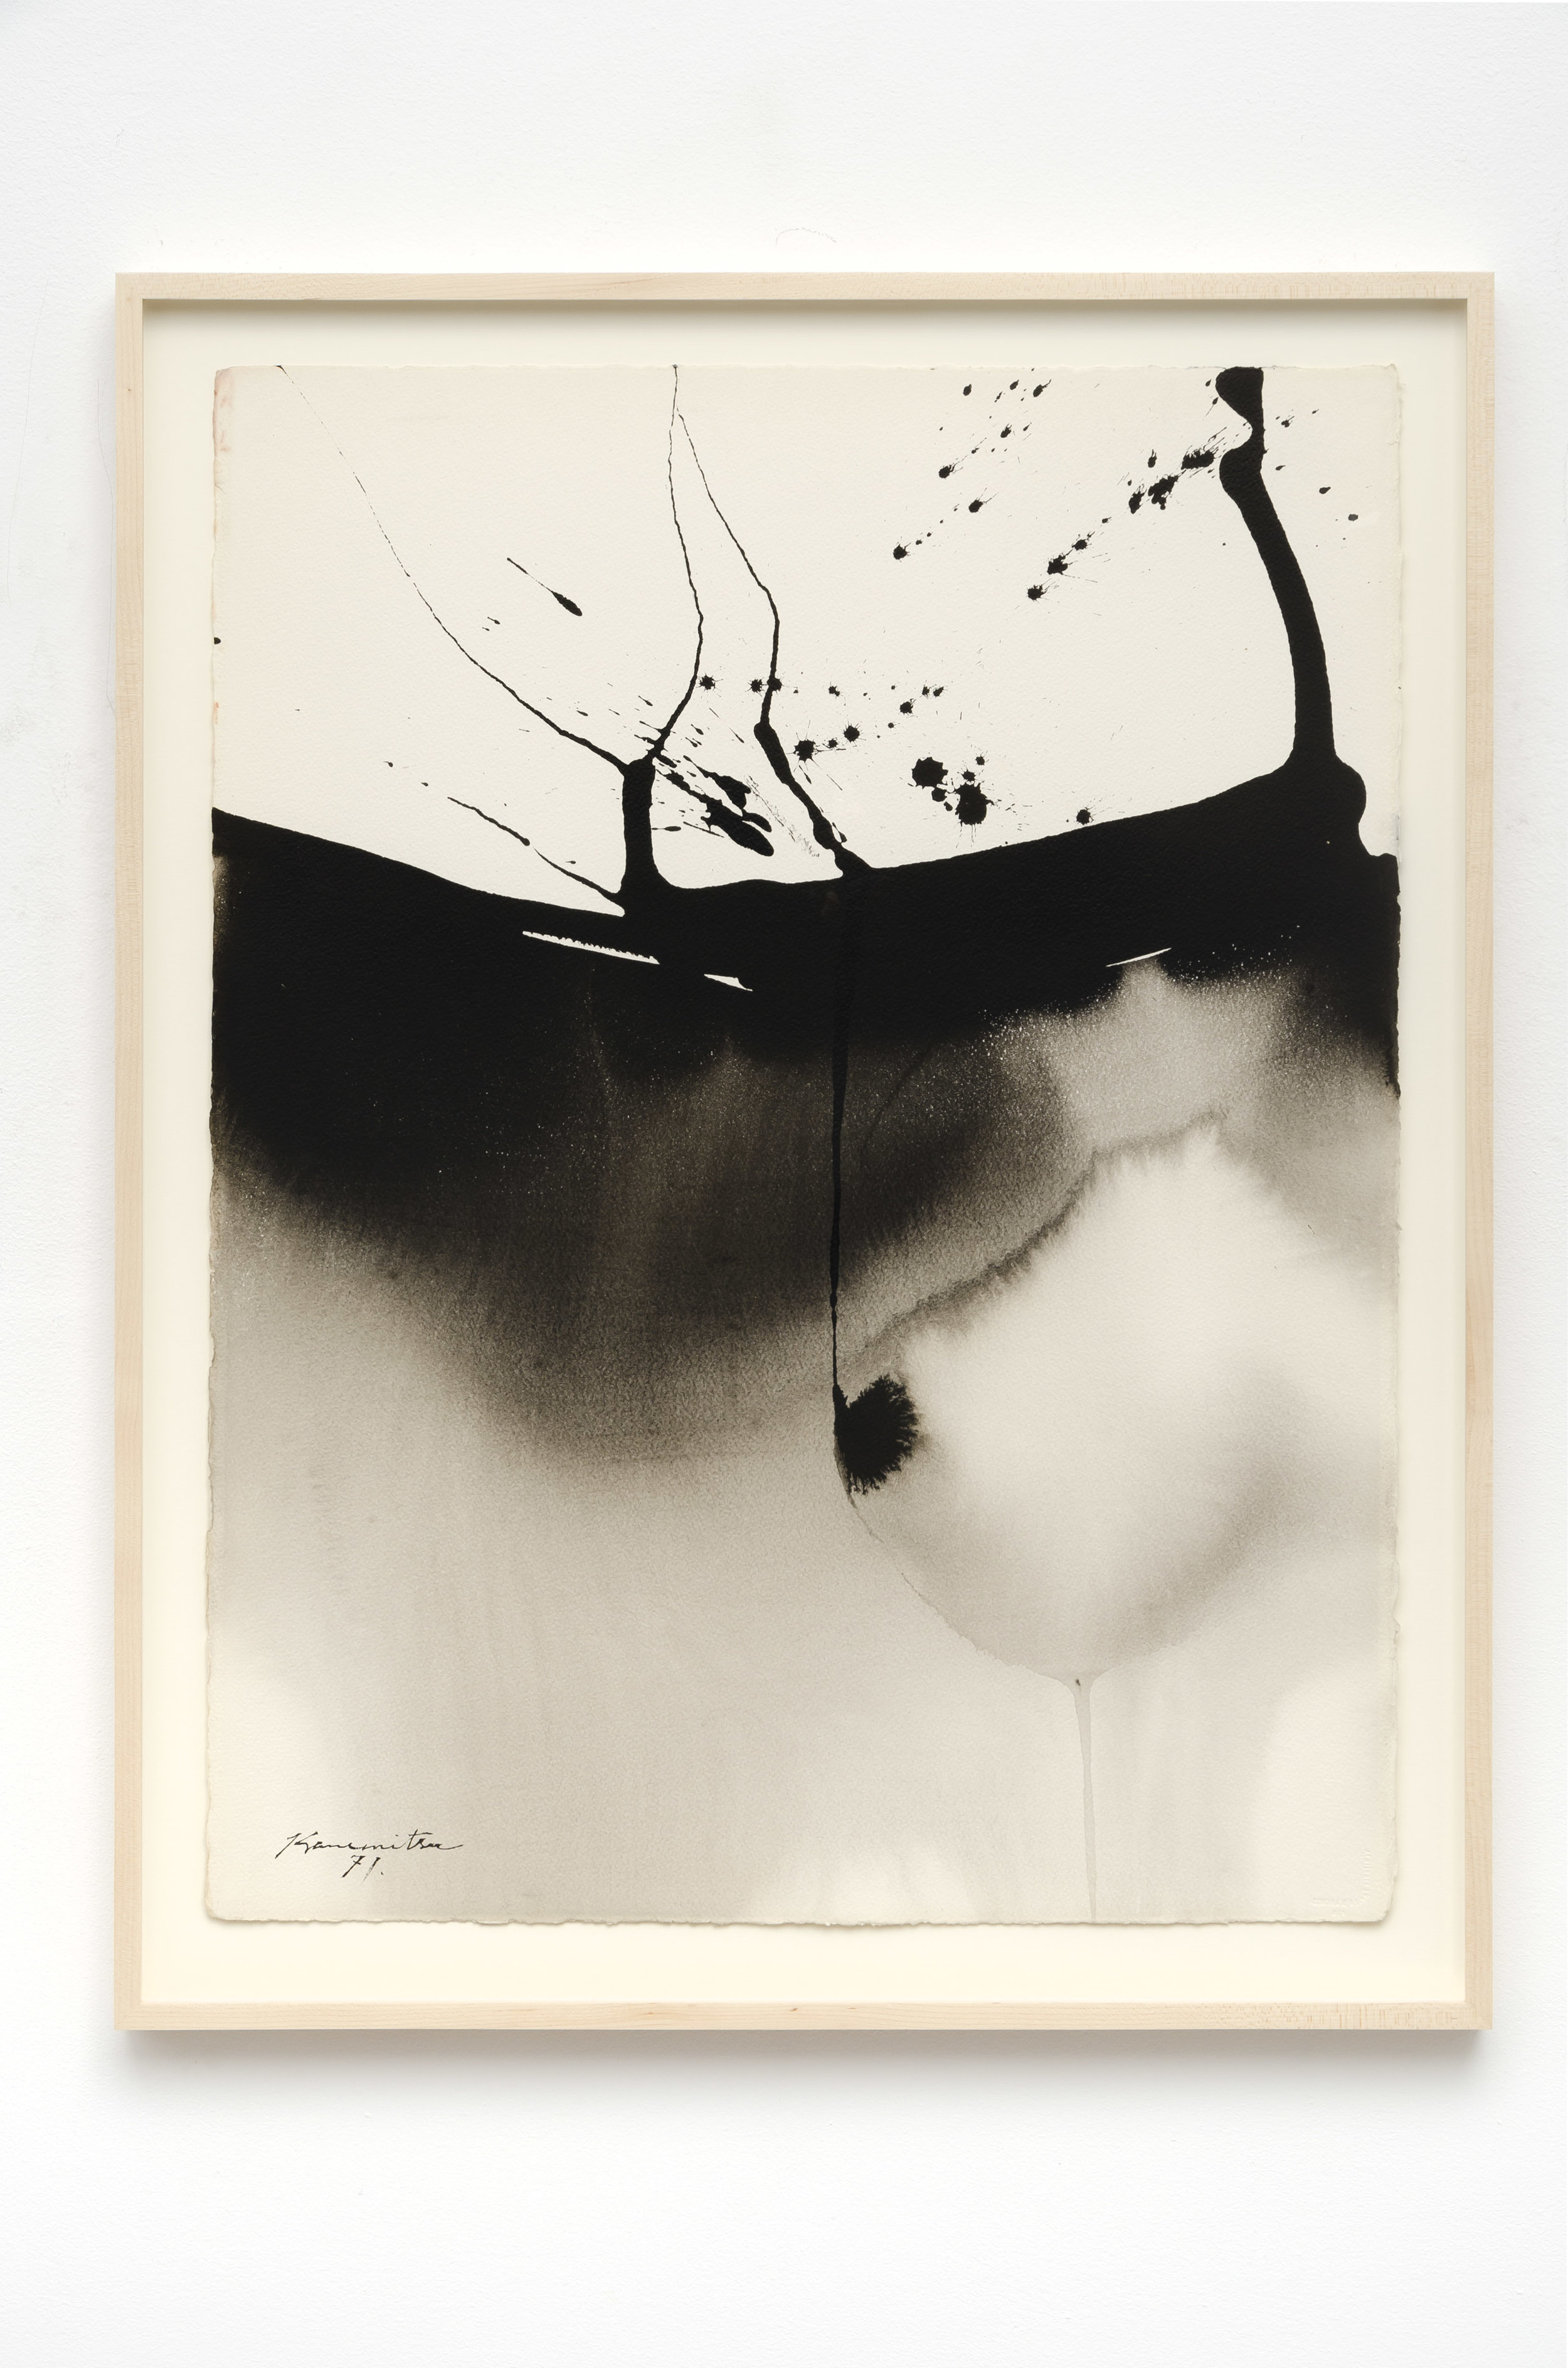 Untitled   1971  sumi ink on paper  33.75 x 26.25 inches, 85.7 x 66.7 centimeters